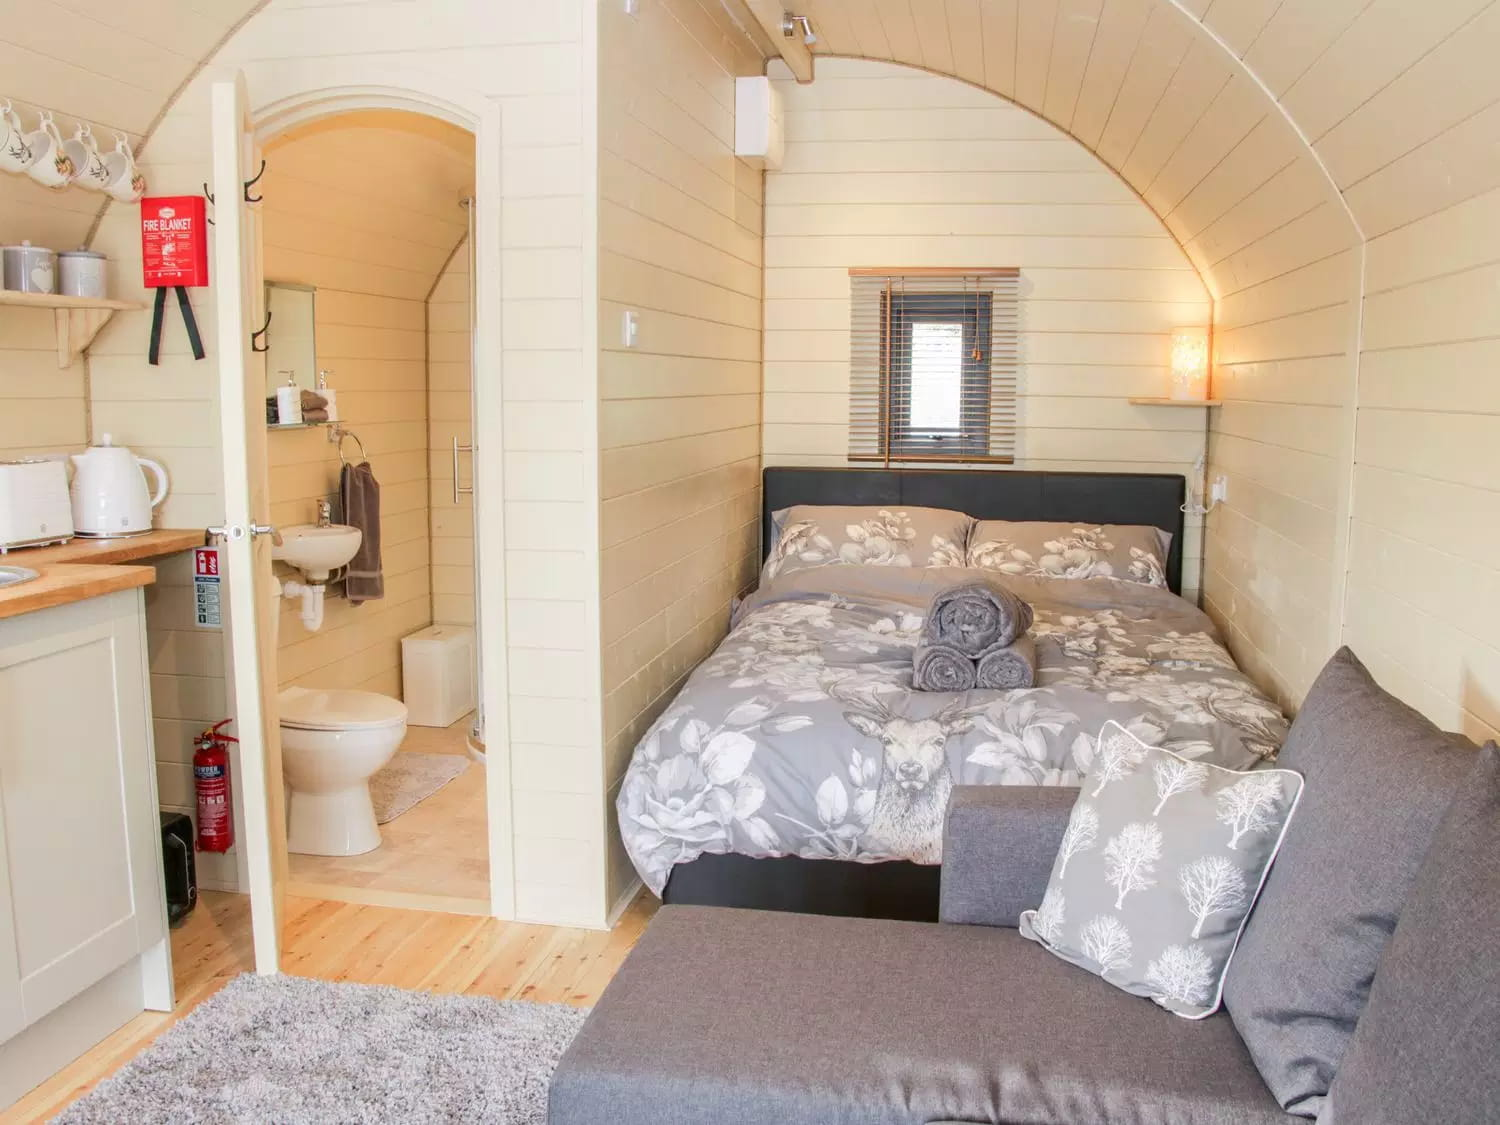 glamping pods scilly isles accommodation bedroom and bathroom